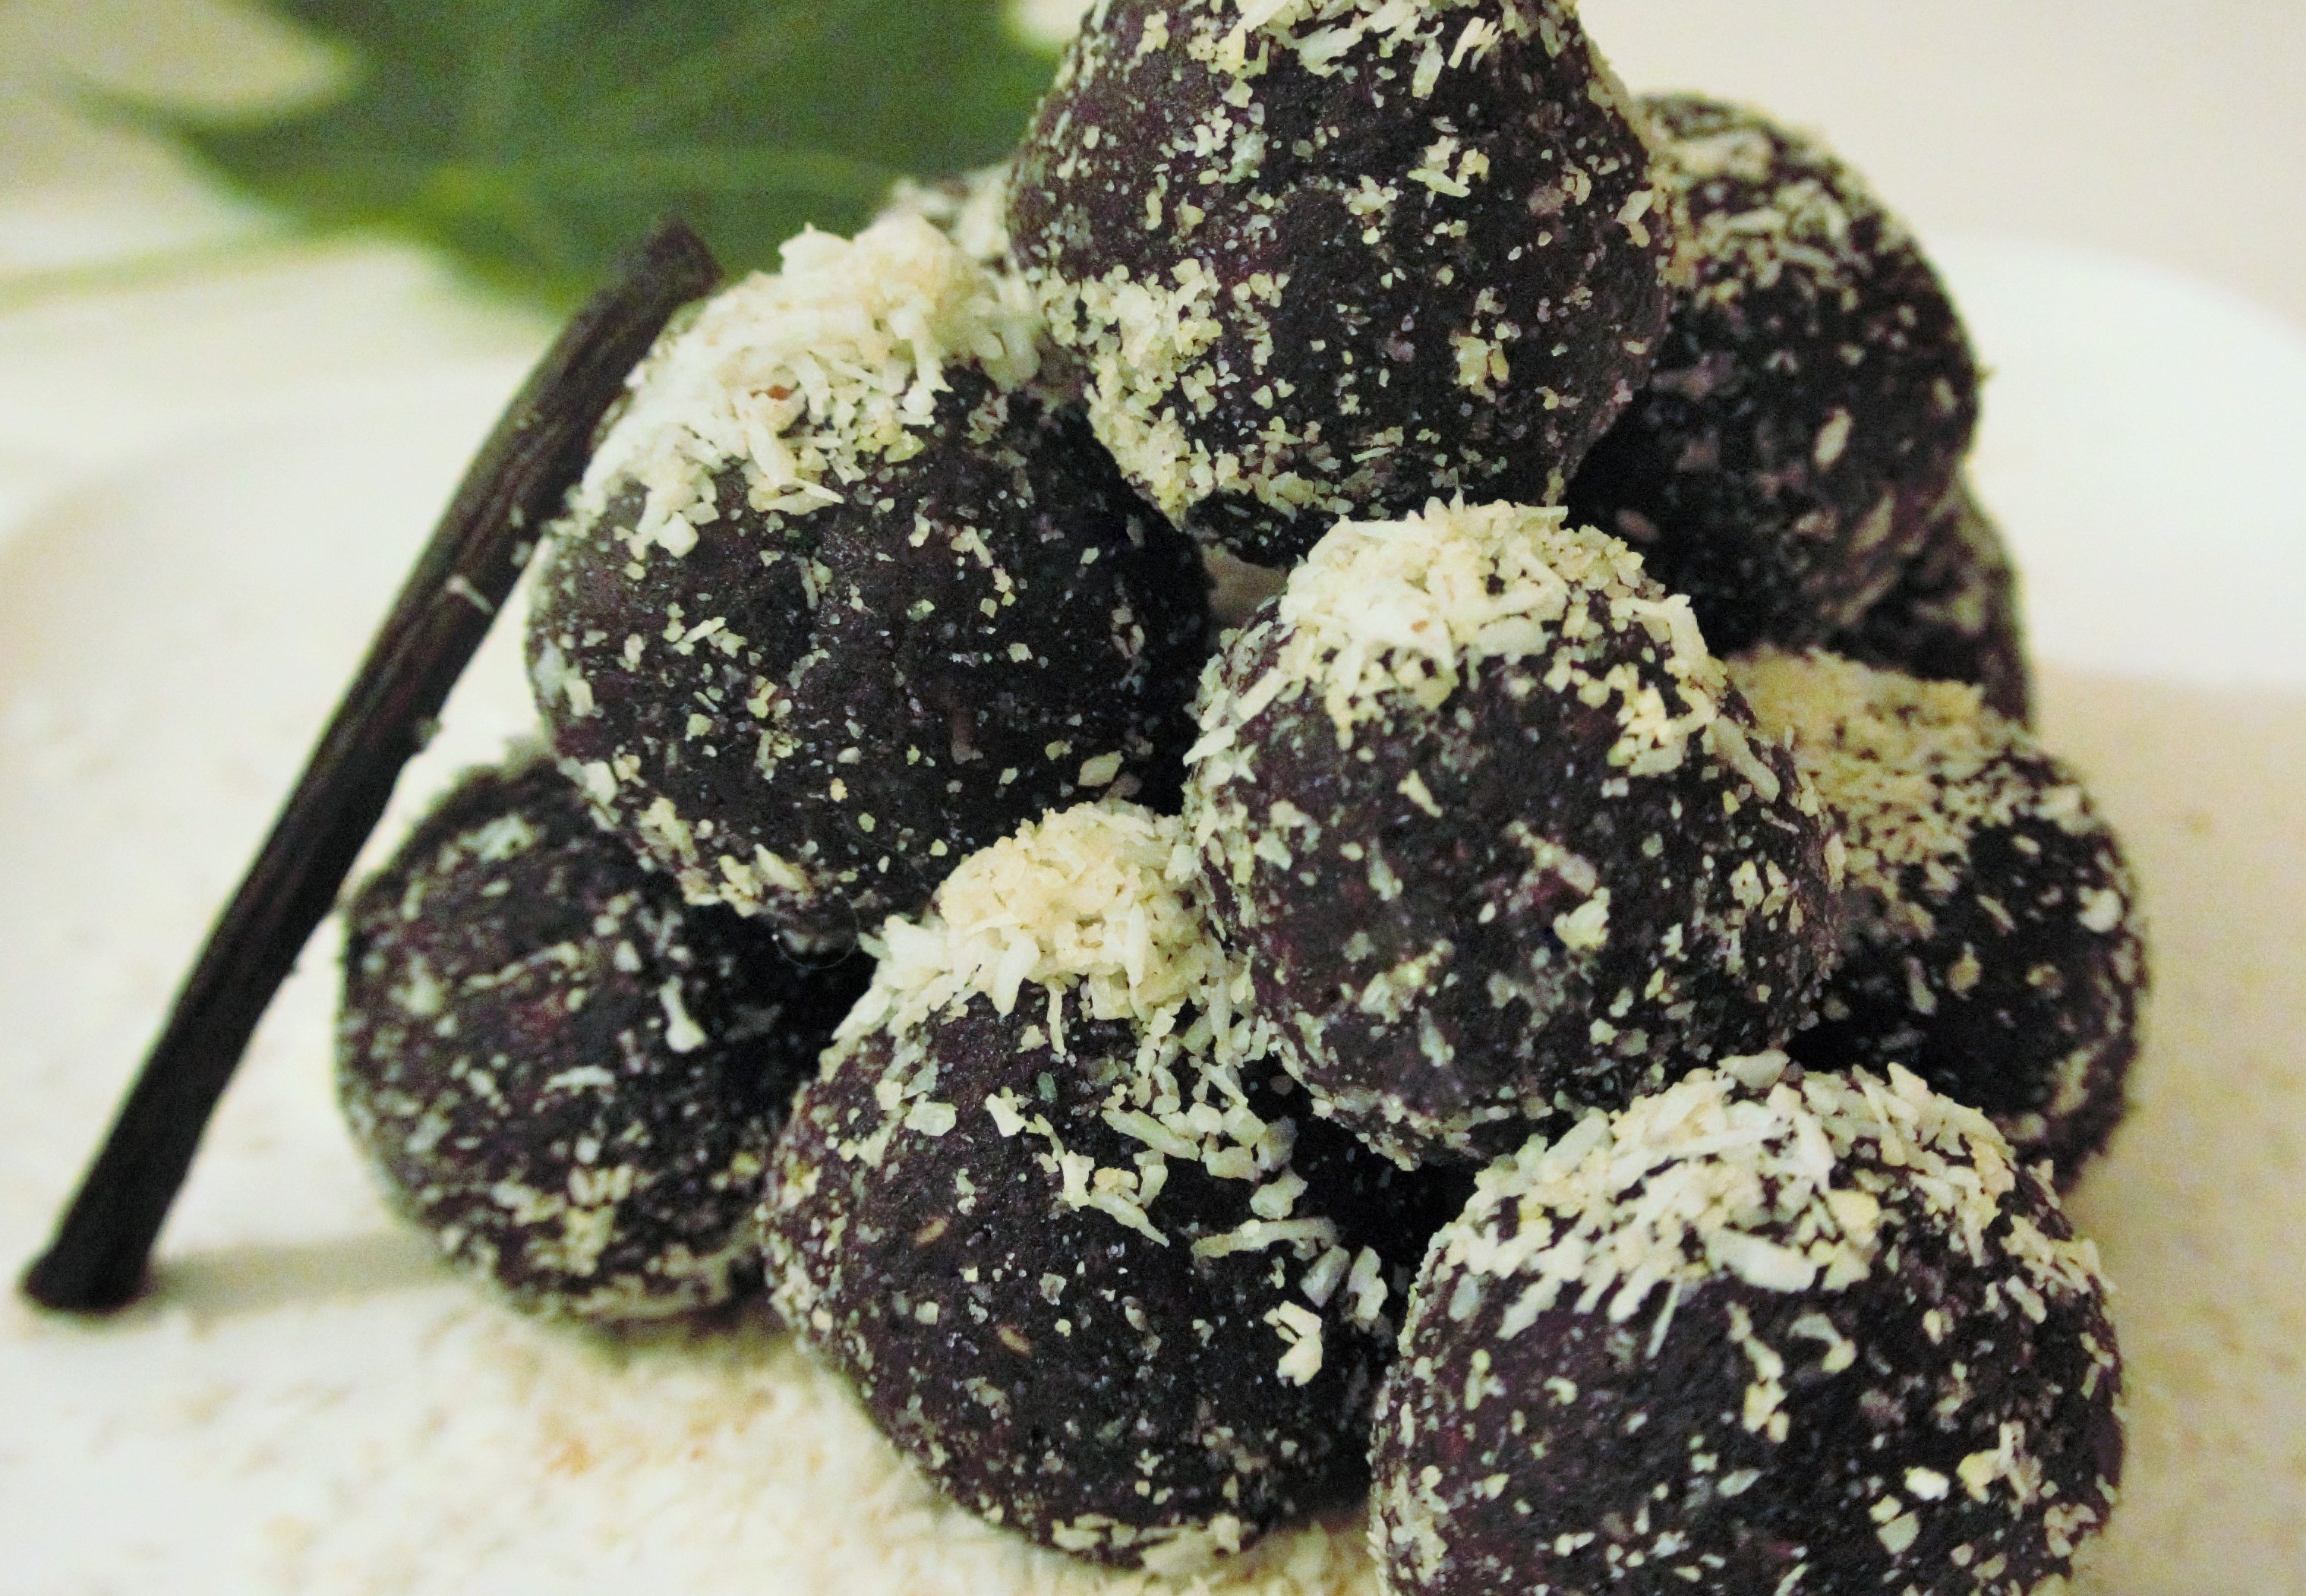 Snowy Date Truffles - Raw Vegan Gluten Free Recipe by Vegan Slaughterer Yaeli Shochat